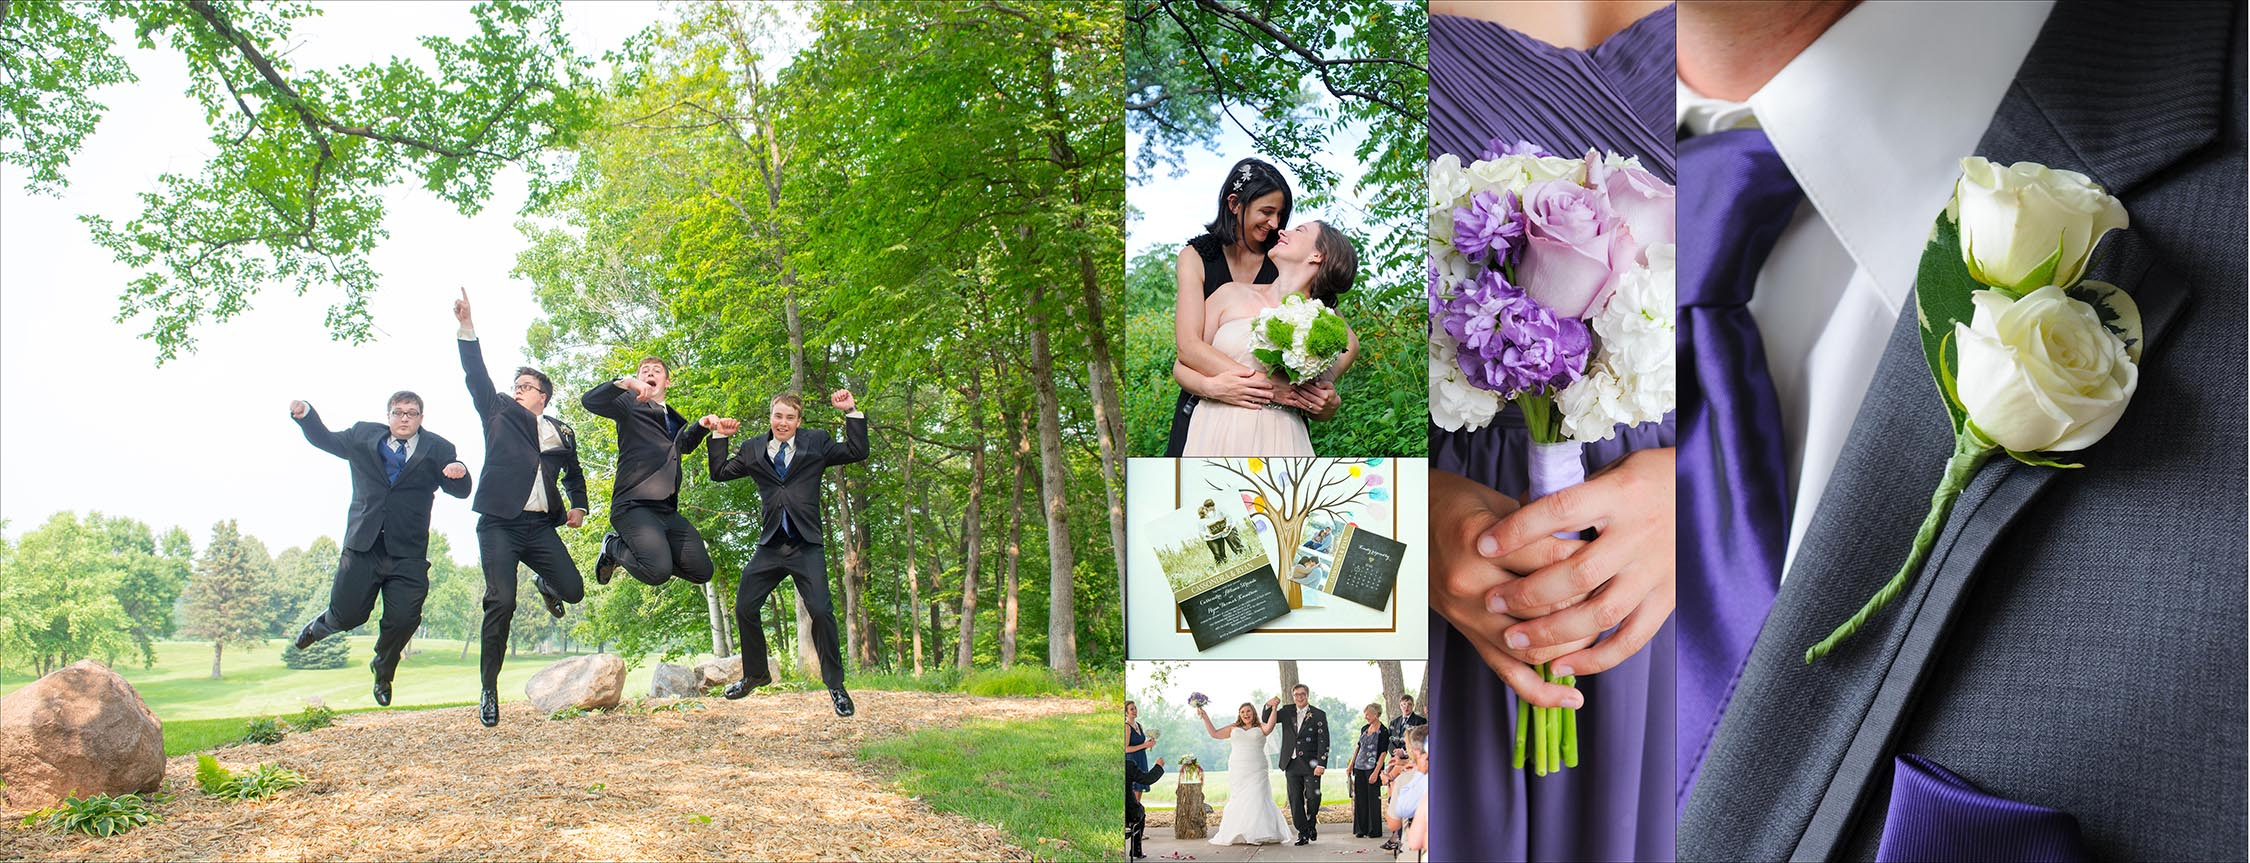 Best Minnesota outside Wedding Photographers